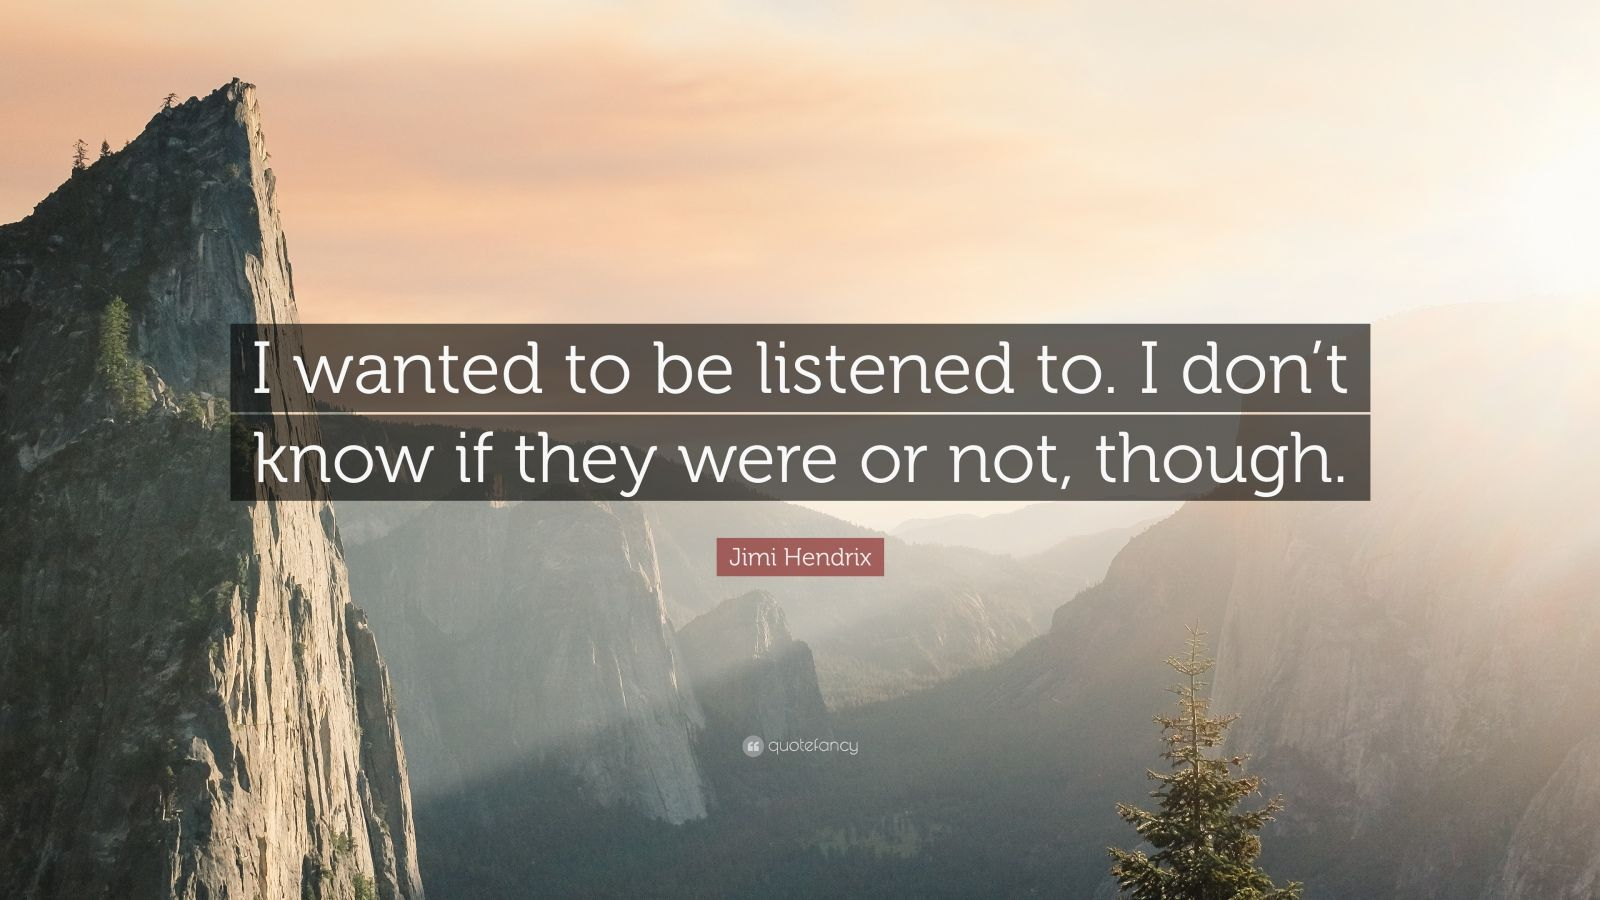 """Jimi Hendrix Quote: """"I wanted to be listened to. I don't know if they were or not, though."""""""